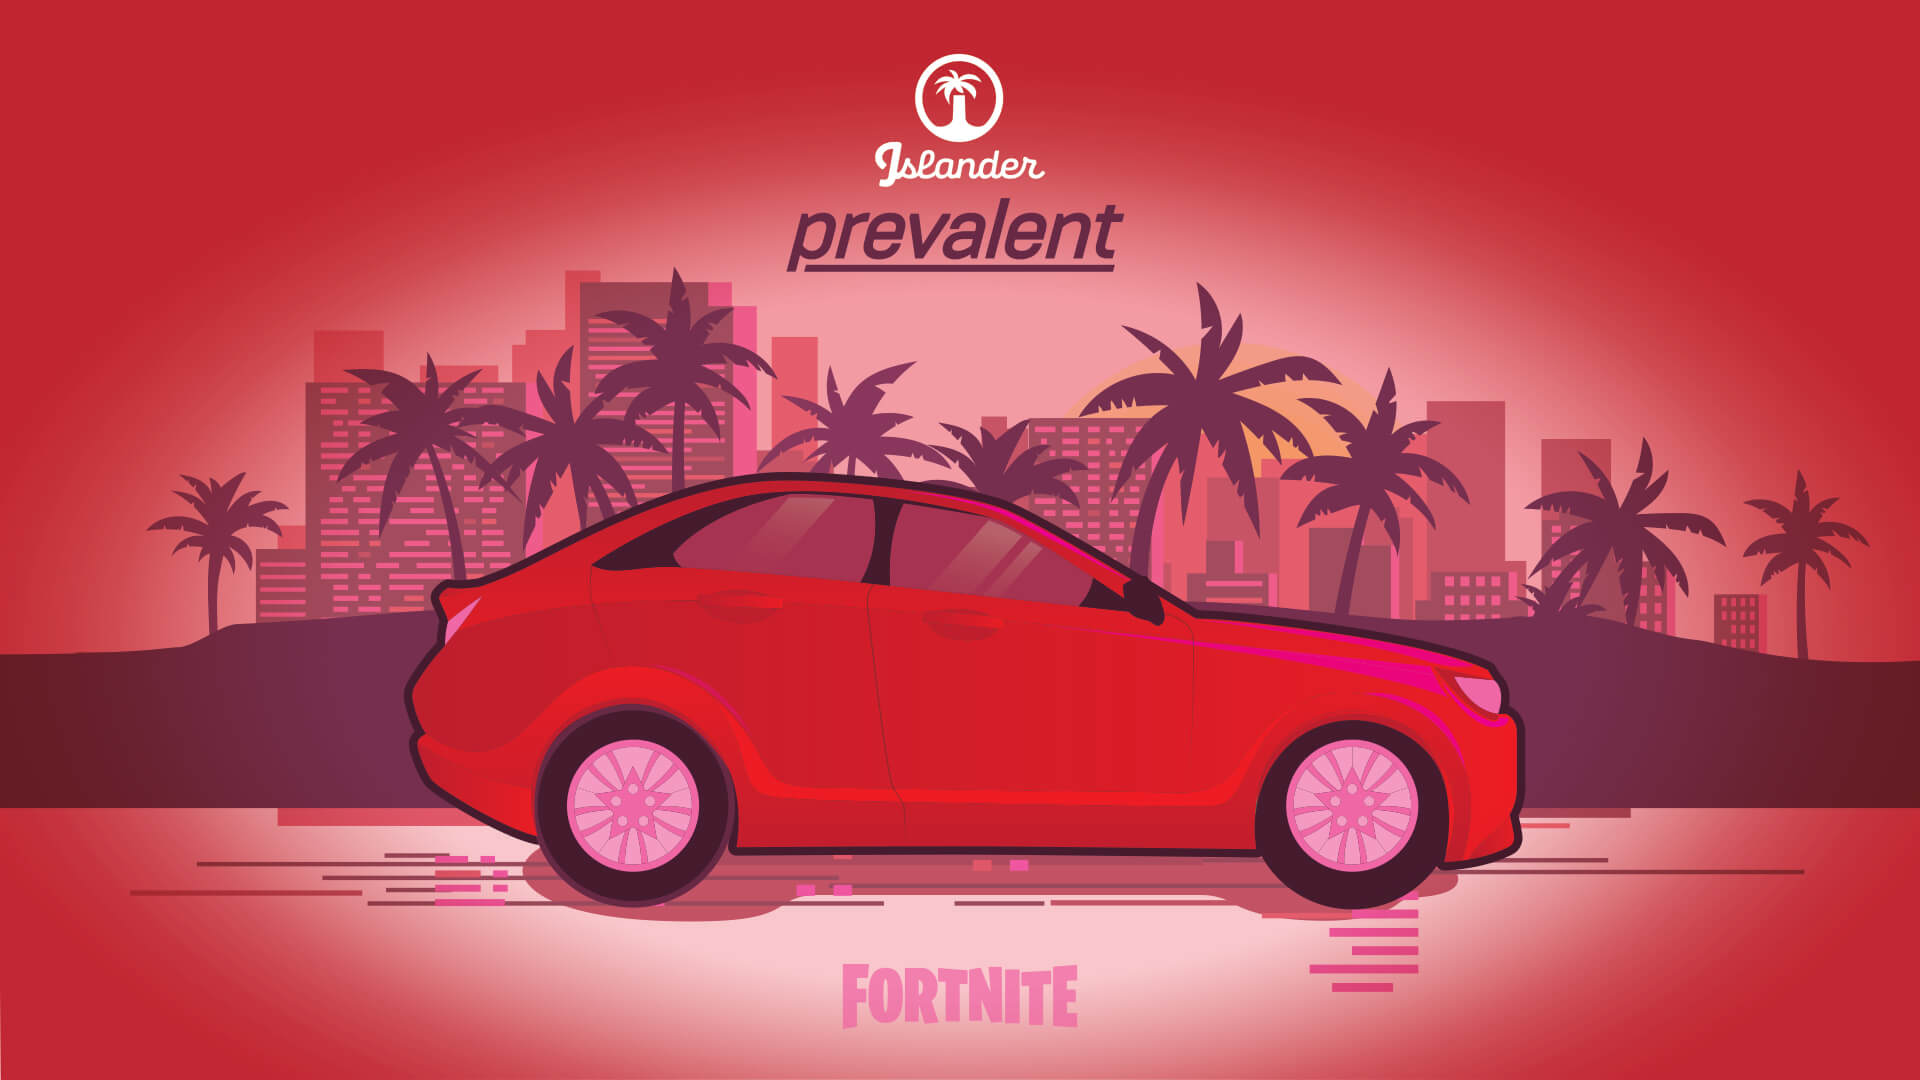 Fortnite Car Islander Prevalent